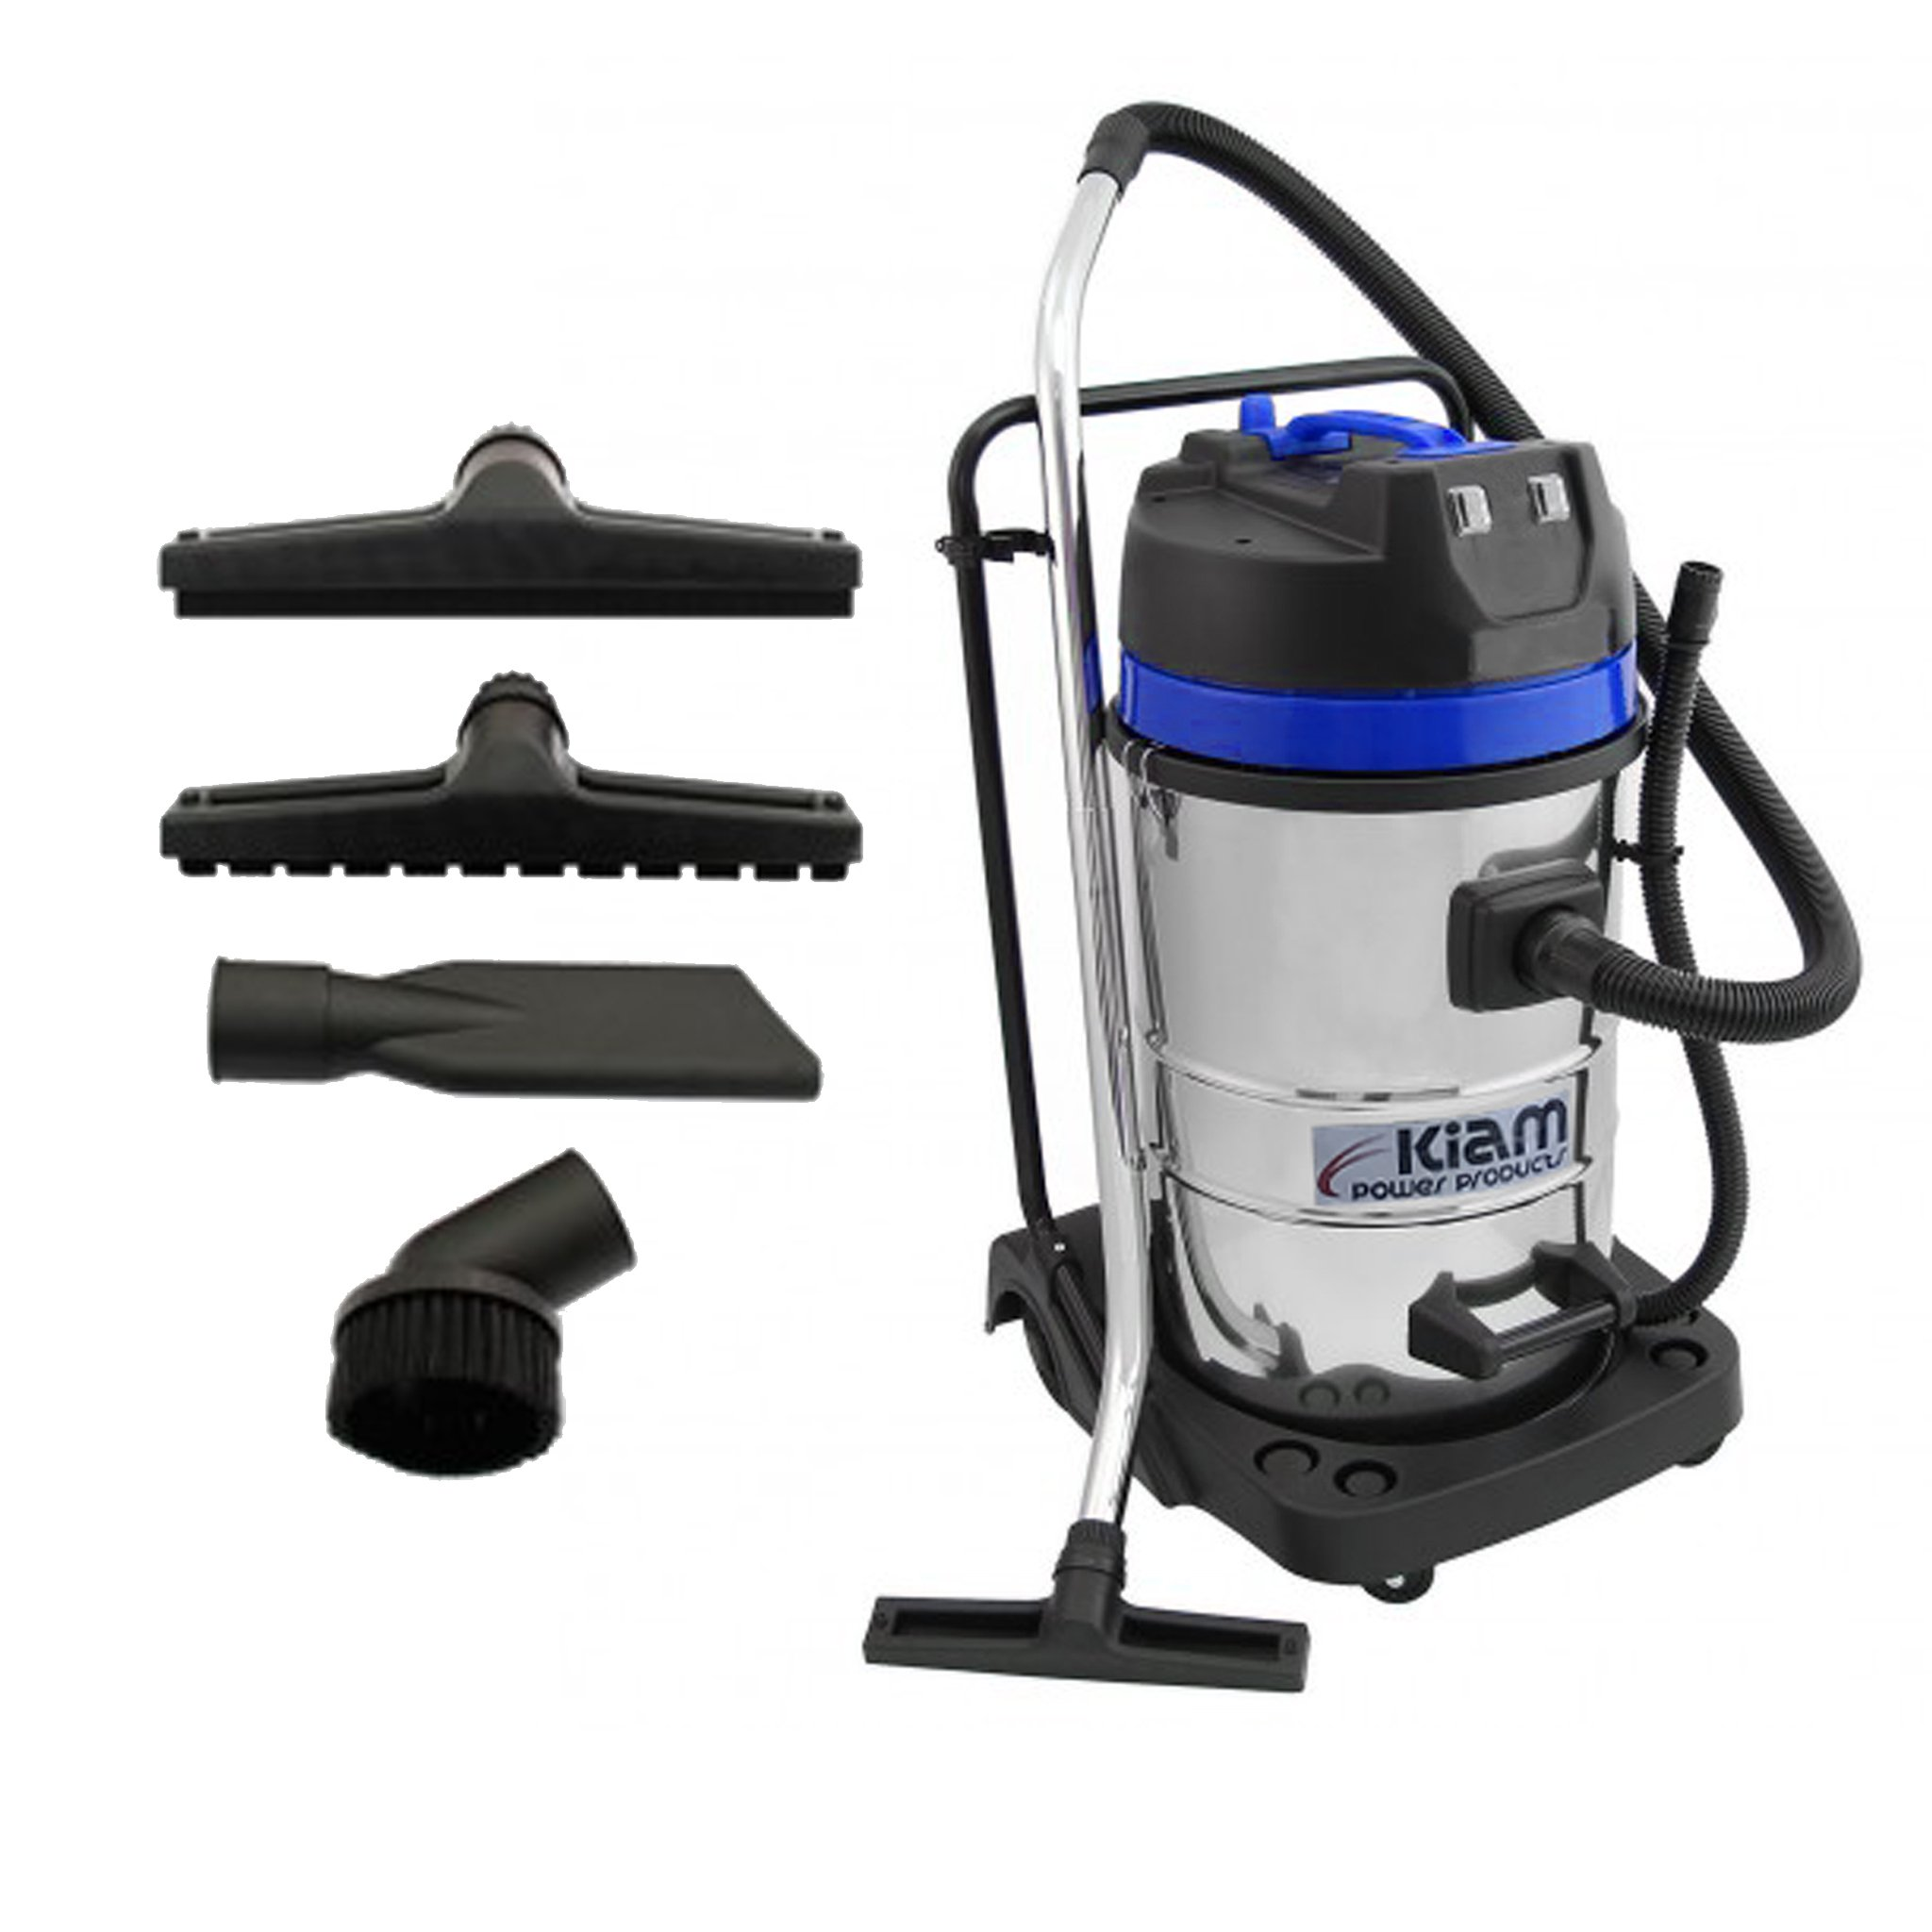 GutterProVac 20ft (2 Story) Commercial Gutter Cleaning Vacuum System, Professional Equipment and Dual Motor, 2.7 HP, Industrial Wet & Dry Vacuum Cleaner and Aluminium Gutter Cleaning Poles by Maxxus Industries (Image #6)